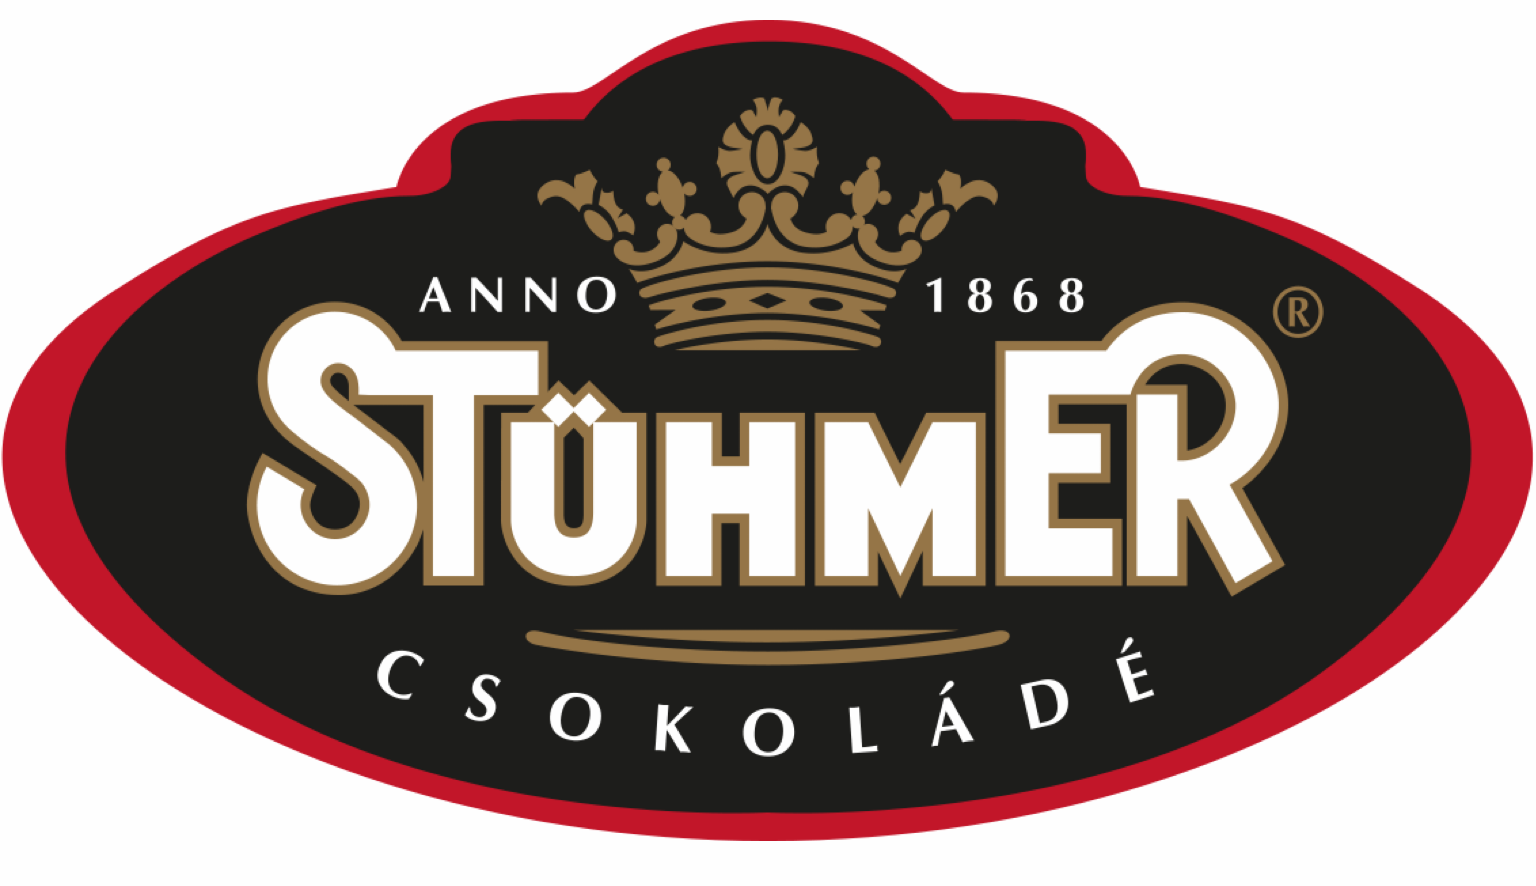 stuhmer.png